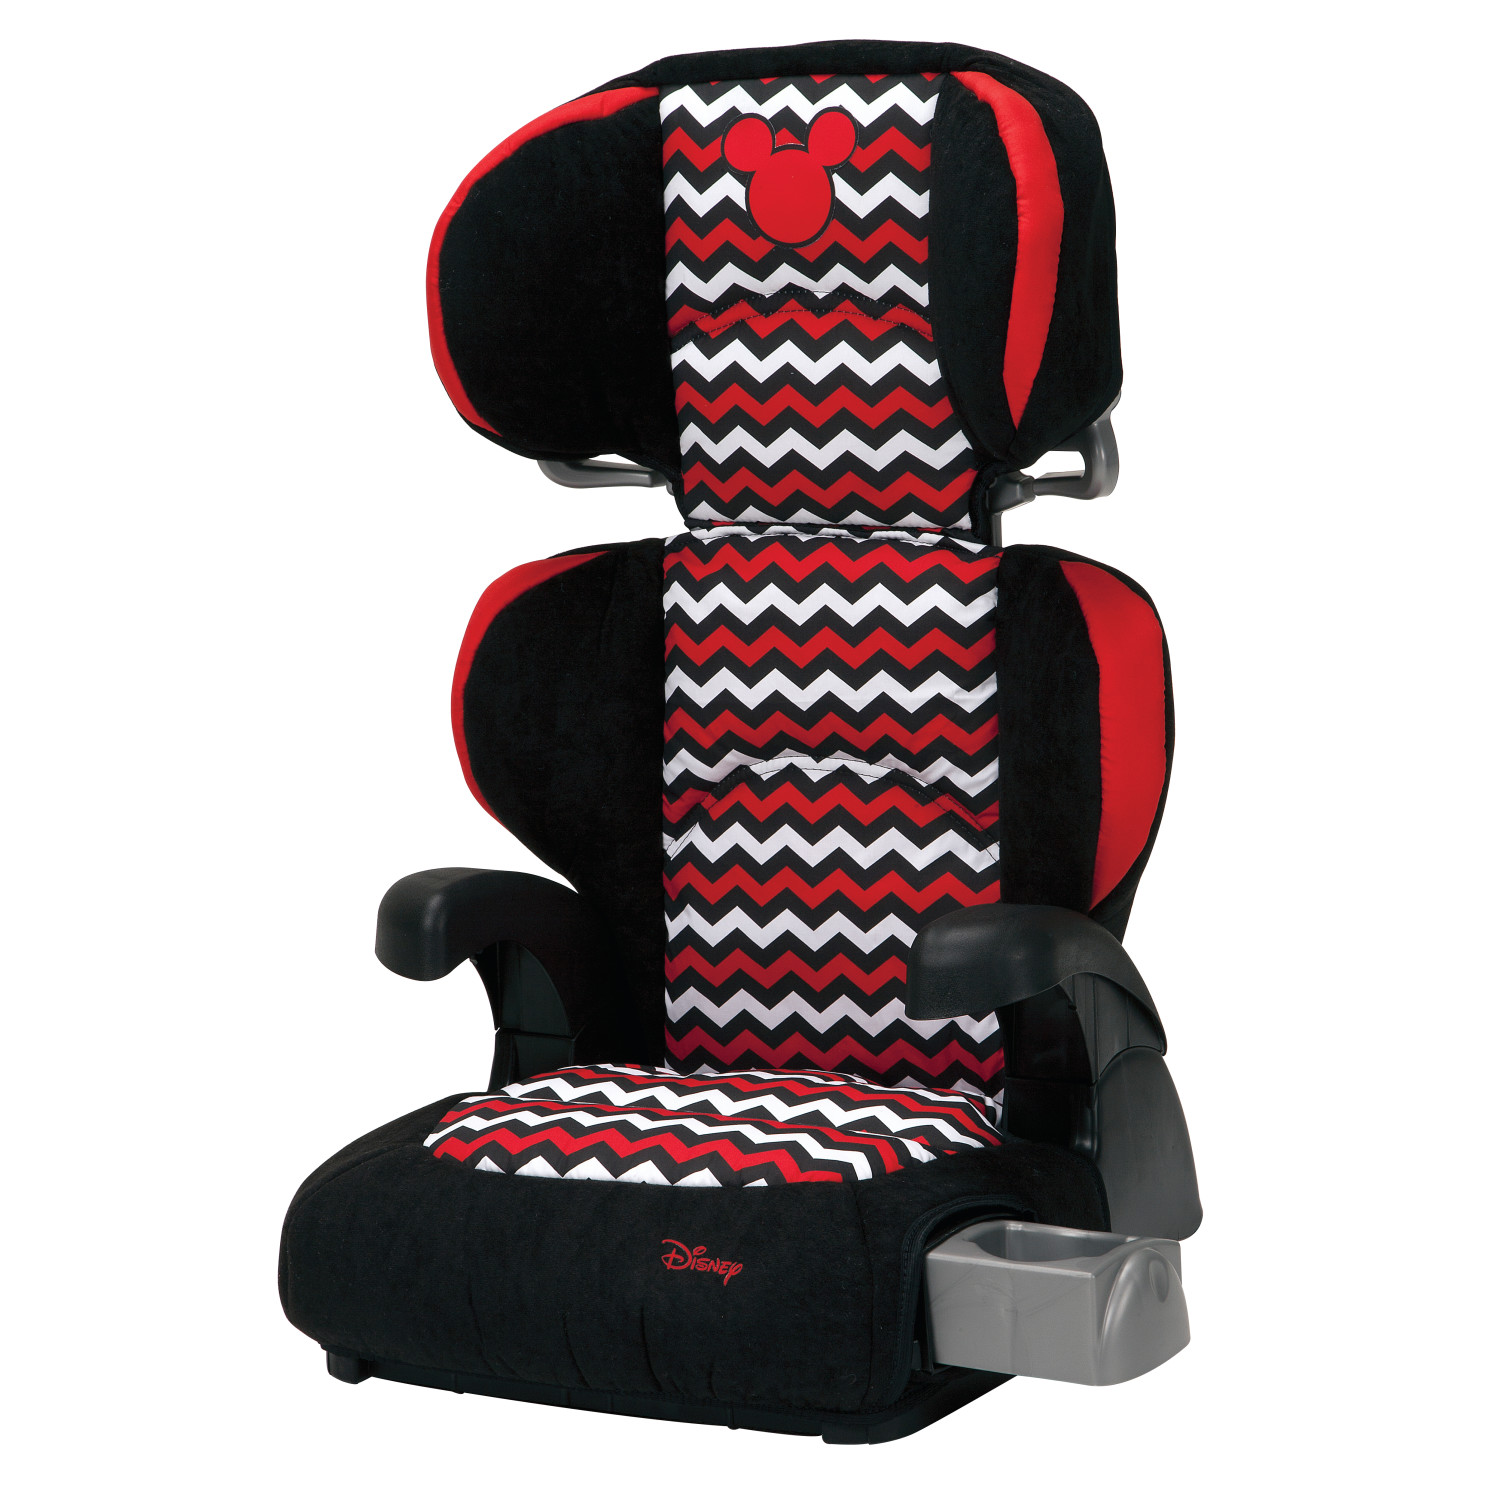 Disney Pronto Booster Car Seat